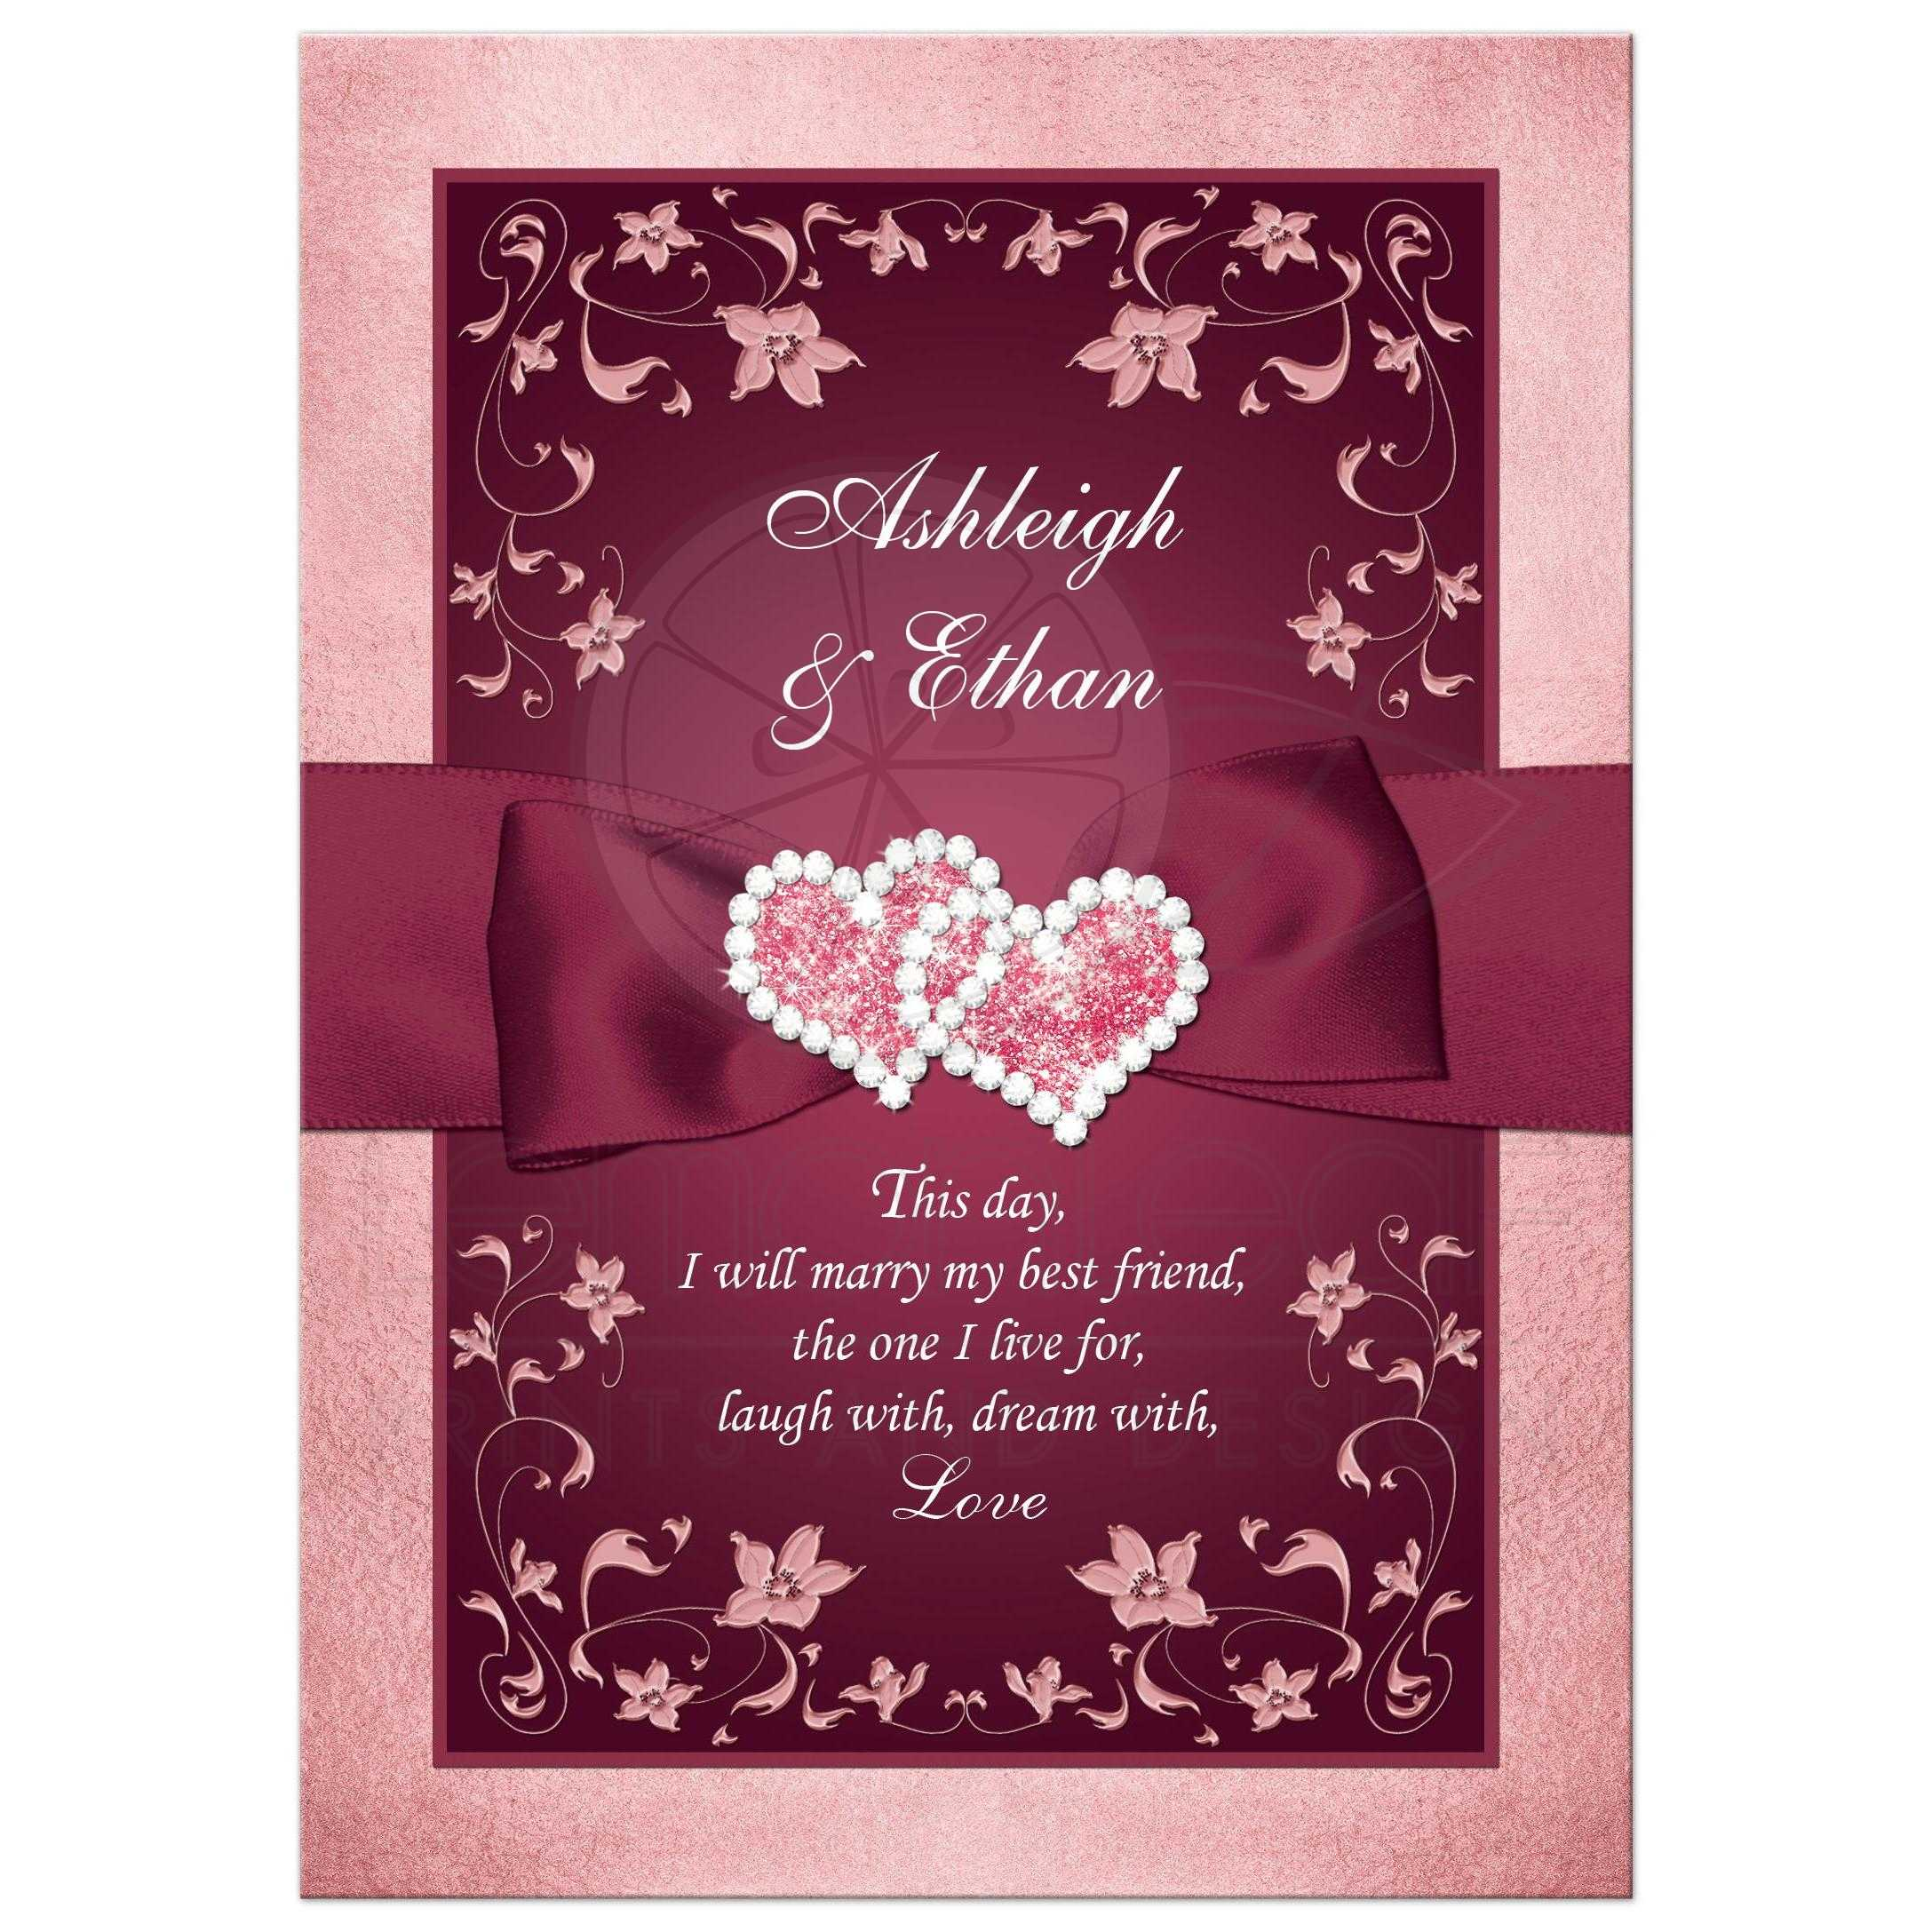 Burgundy Wine Blush Pink Rose Gold And White Fl Wedding Invitation With